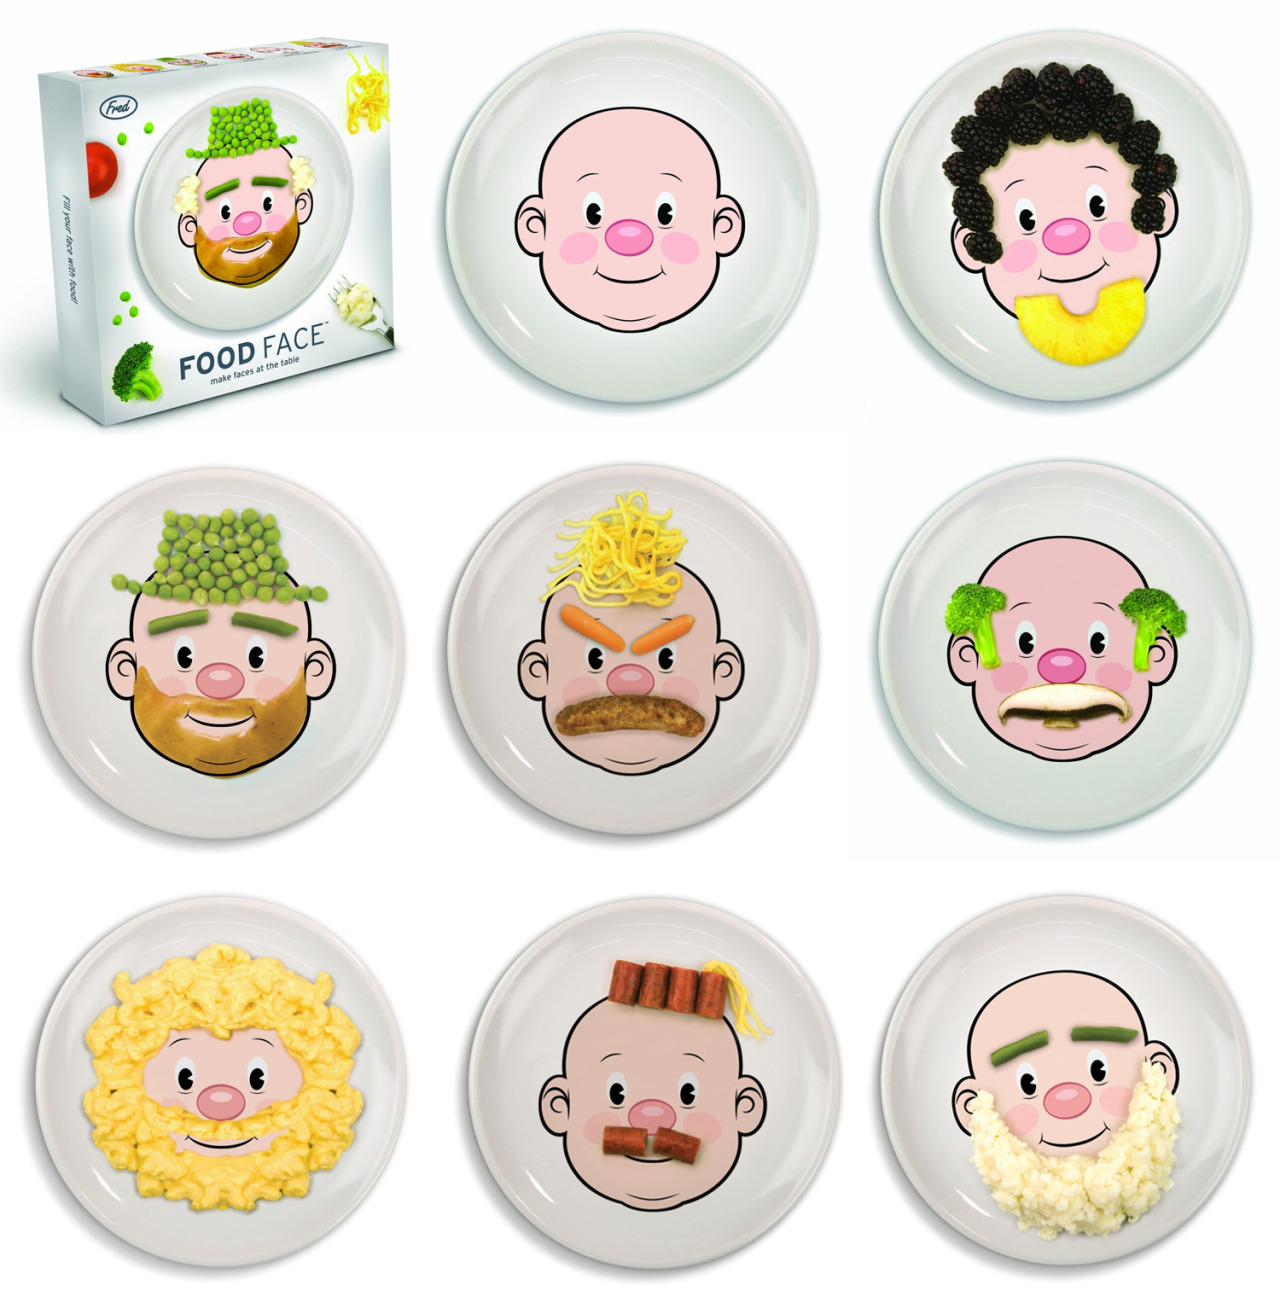 whodesignedit:  Food Face Boy Plate by Fred and Friends Have your parents ever told you not to play with your food? Well, throw that out the window when you get this food face boy plate from Fred and Friends. Kids and adults will love making faces with this awesome plate! You can get this playful plate at Amazon!